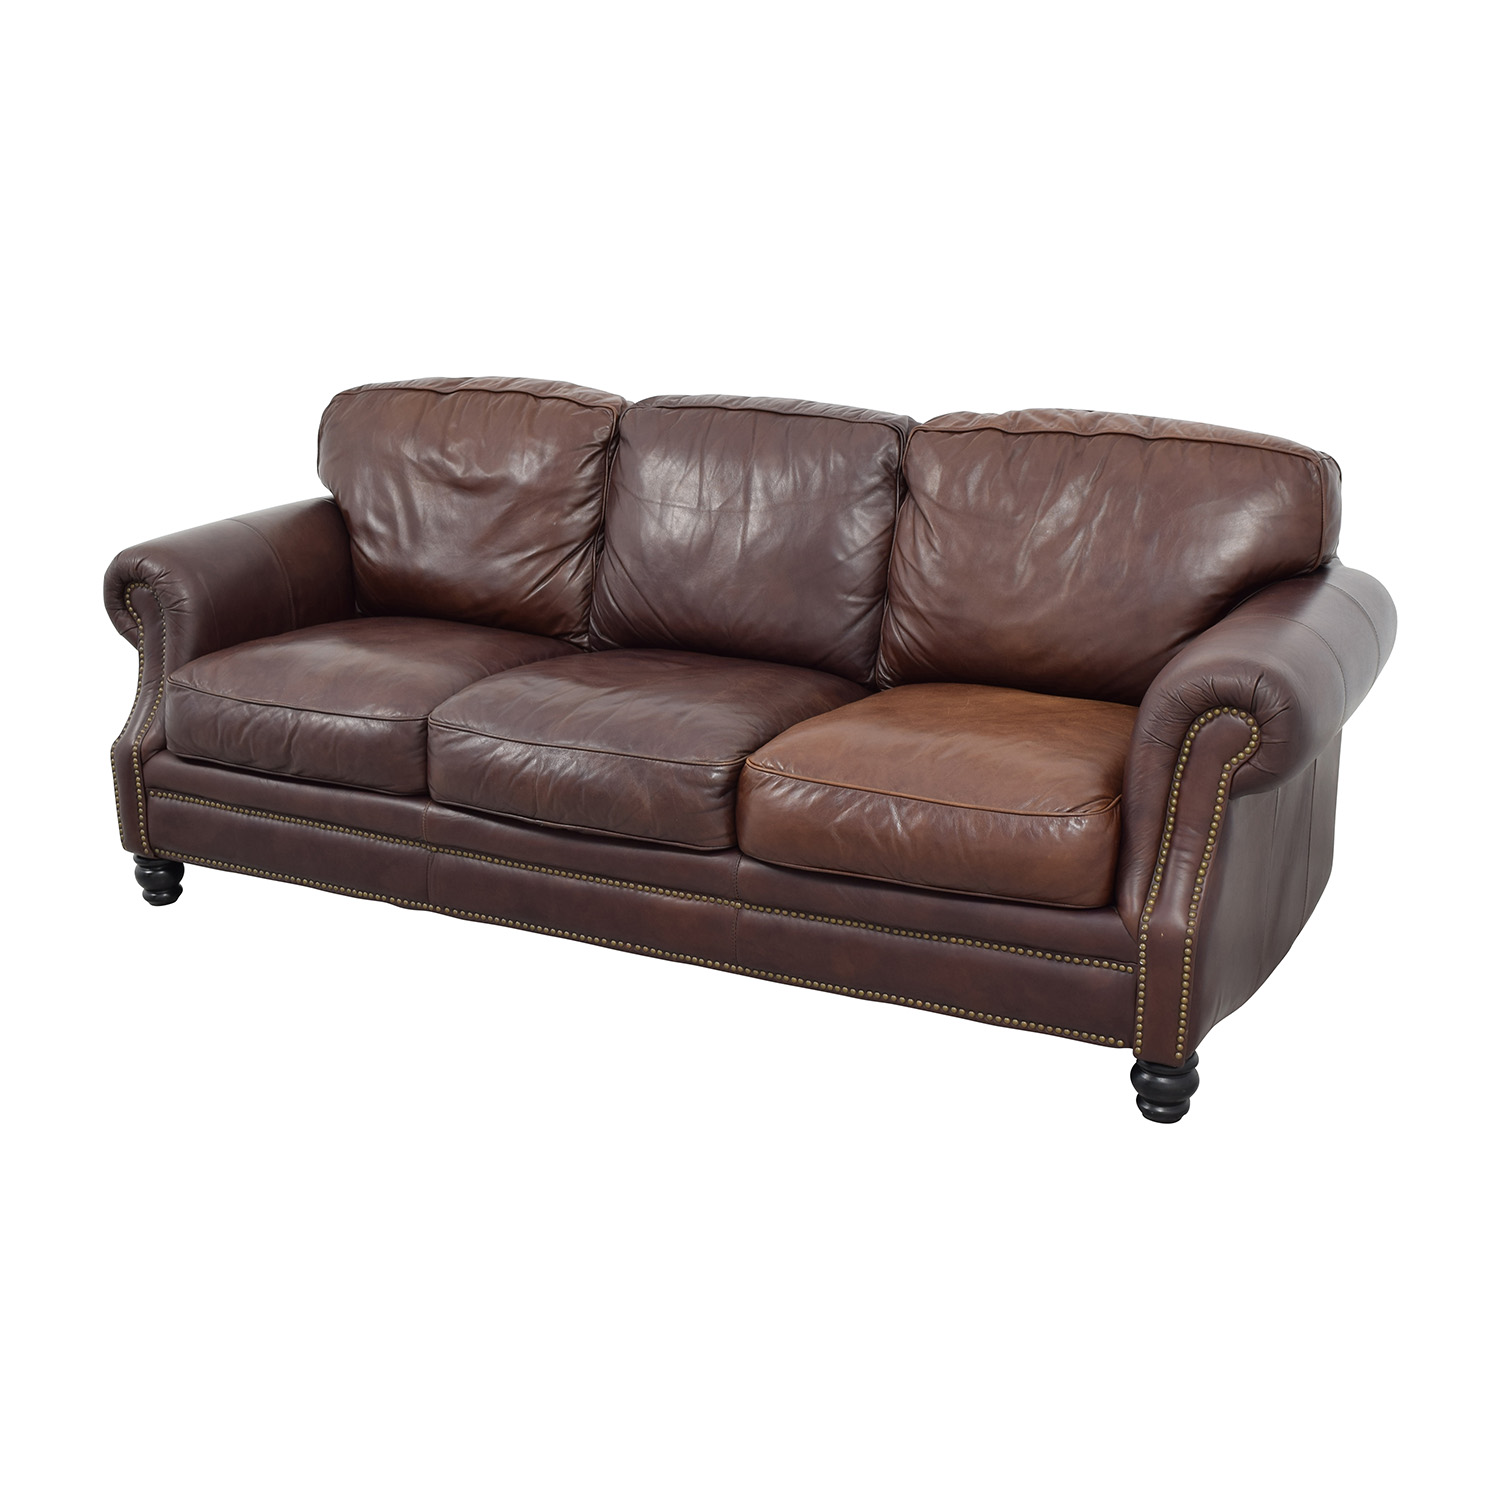 Sectional Sofas Toronto Kijiji Beautiful Sectional Sofa Toronto Kijiji Sectional Sofas